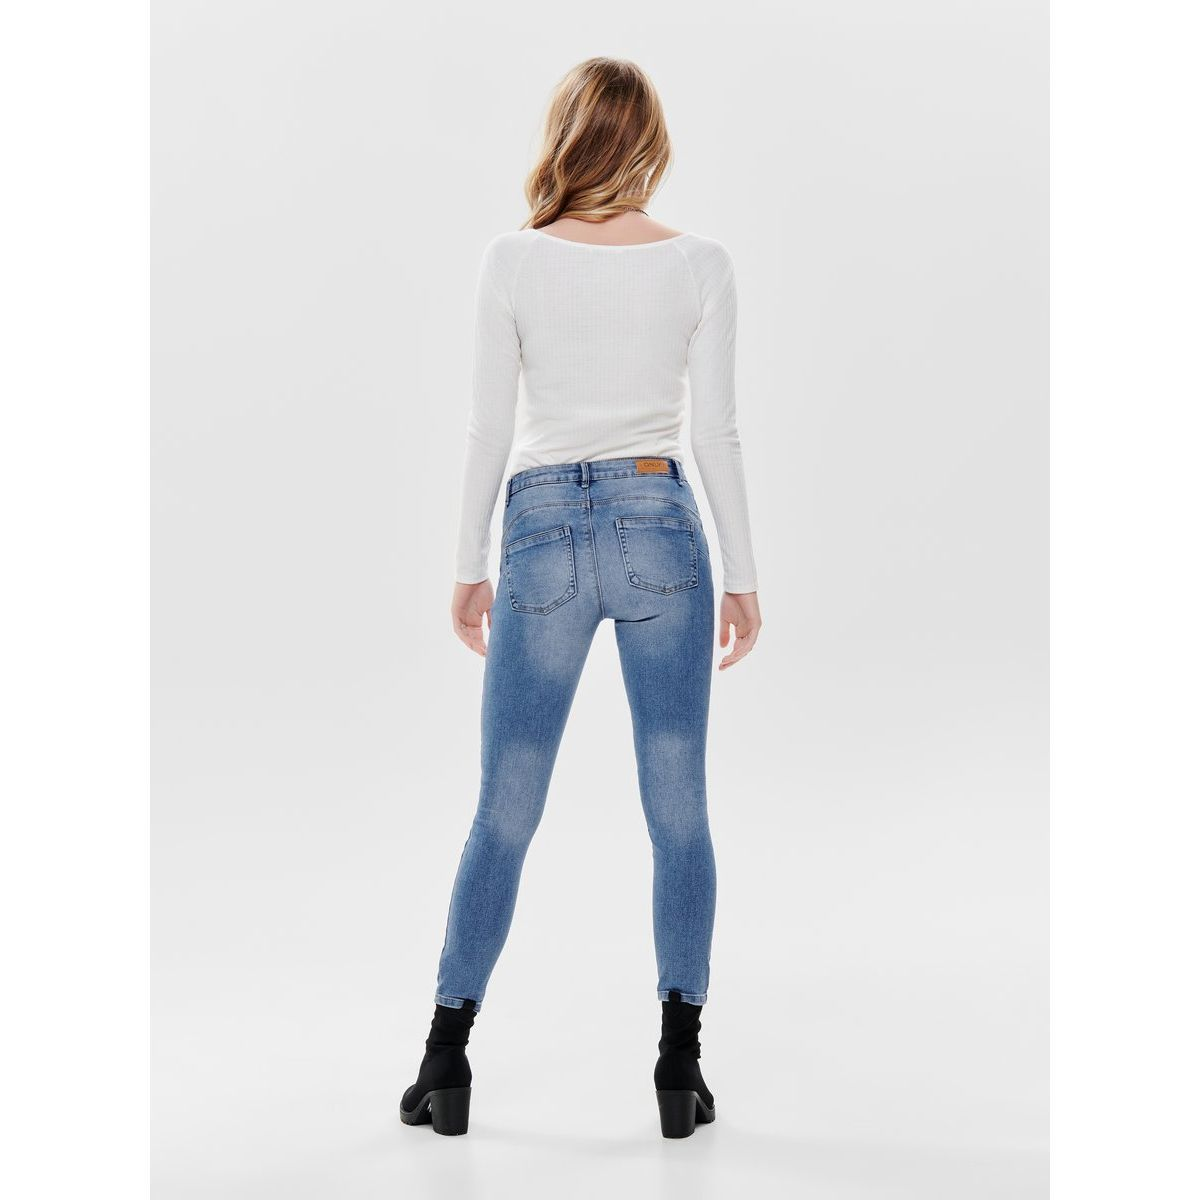 Jean Taille 28 5